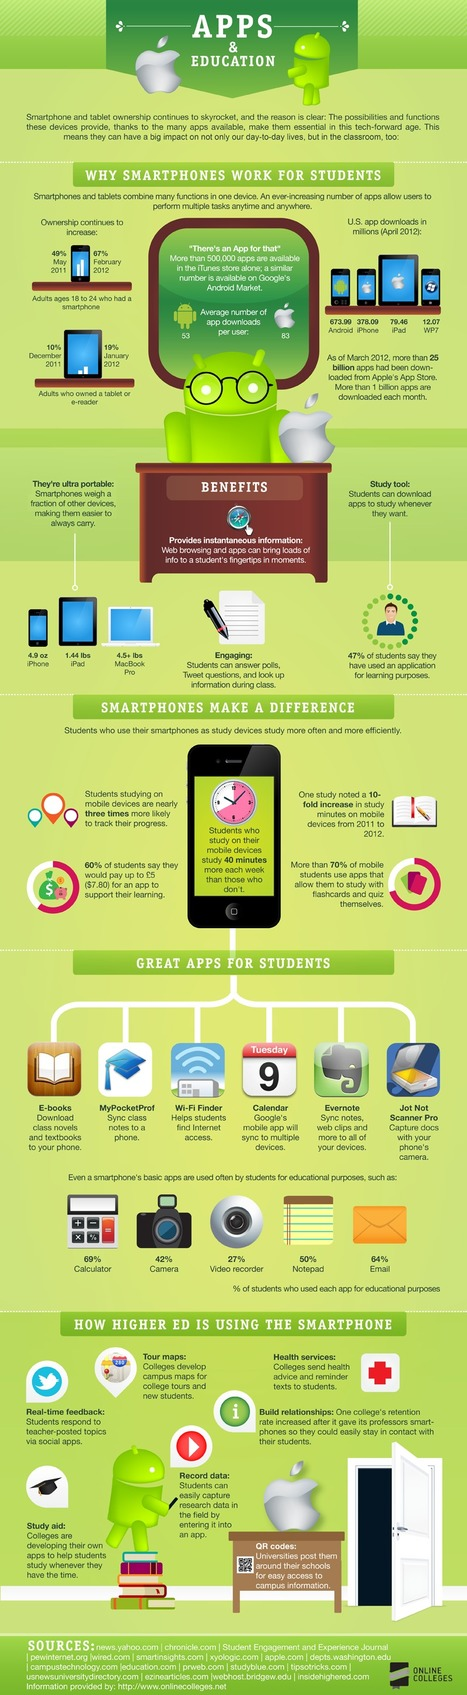 Trends | Infographic: Apps and Education | Technology Resources for K-12 Education | Scoop.it